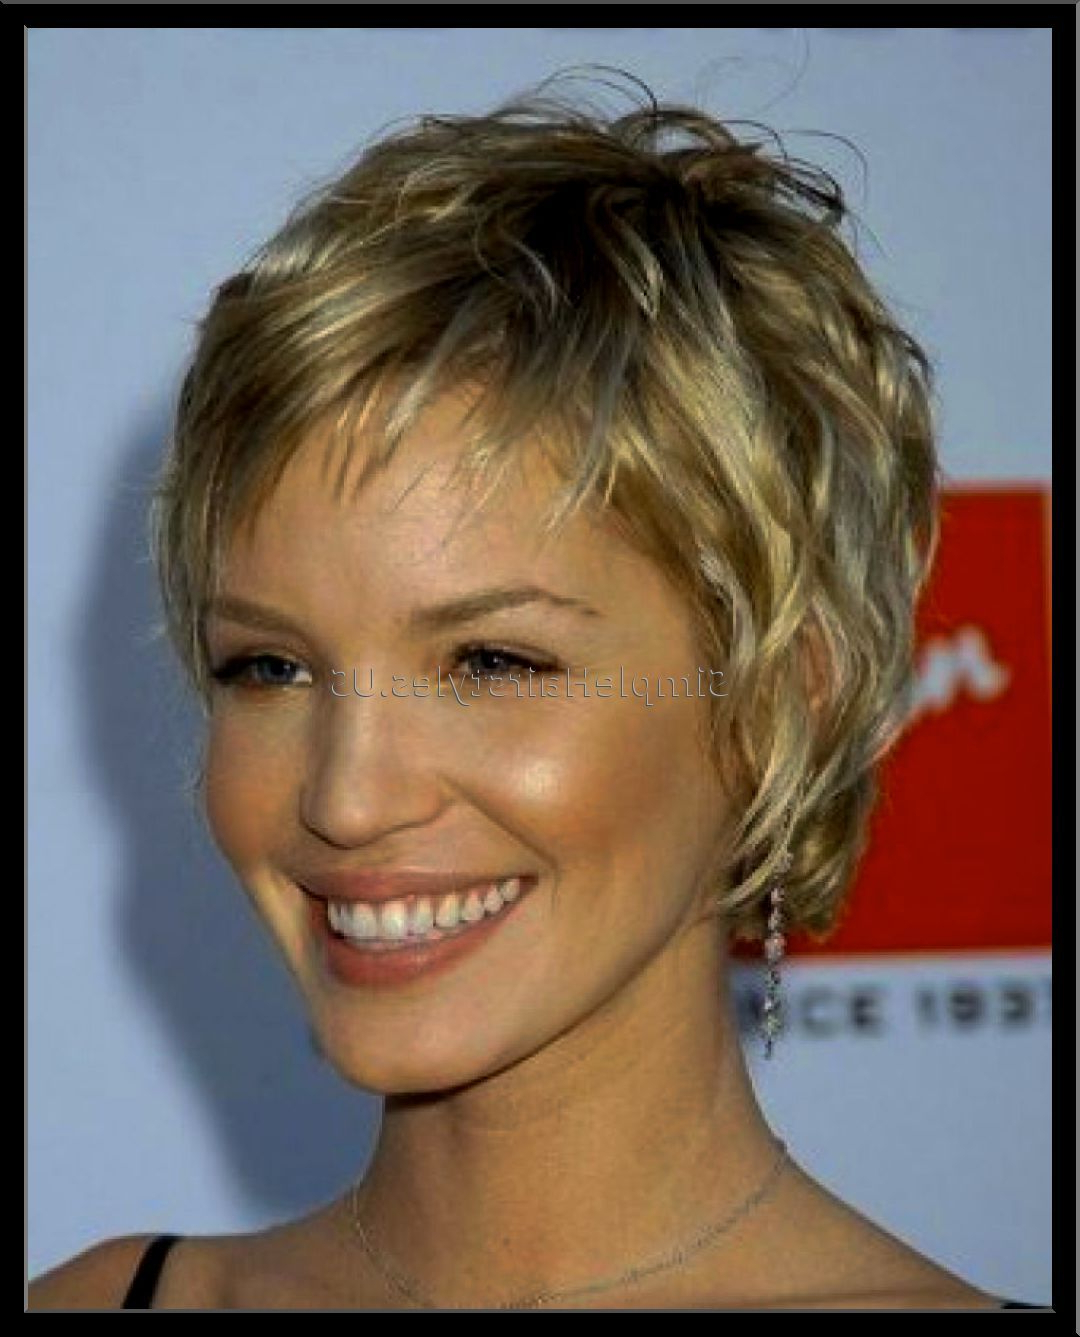 Simple Short Hairstyles For Women Over 50 | Simplehairstyles For Short And Simple Hairstyles For Women Over (View 3 of 20)